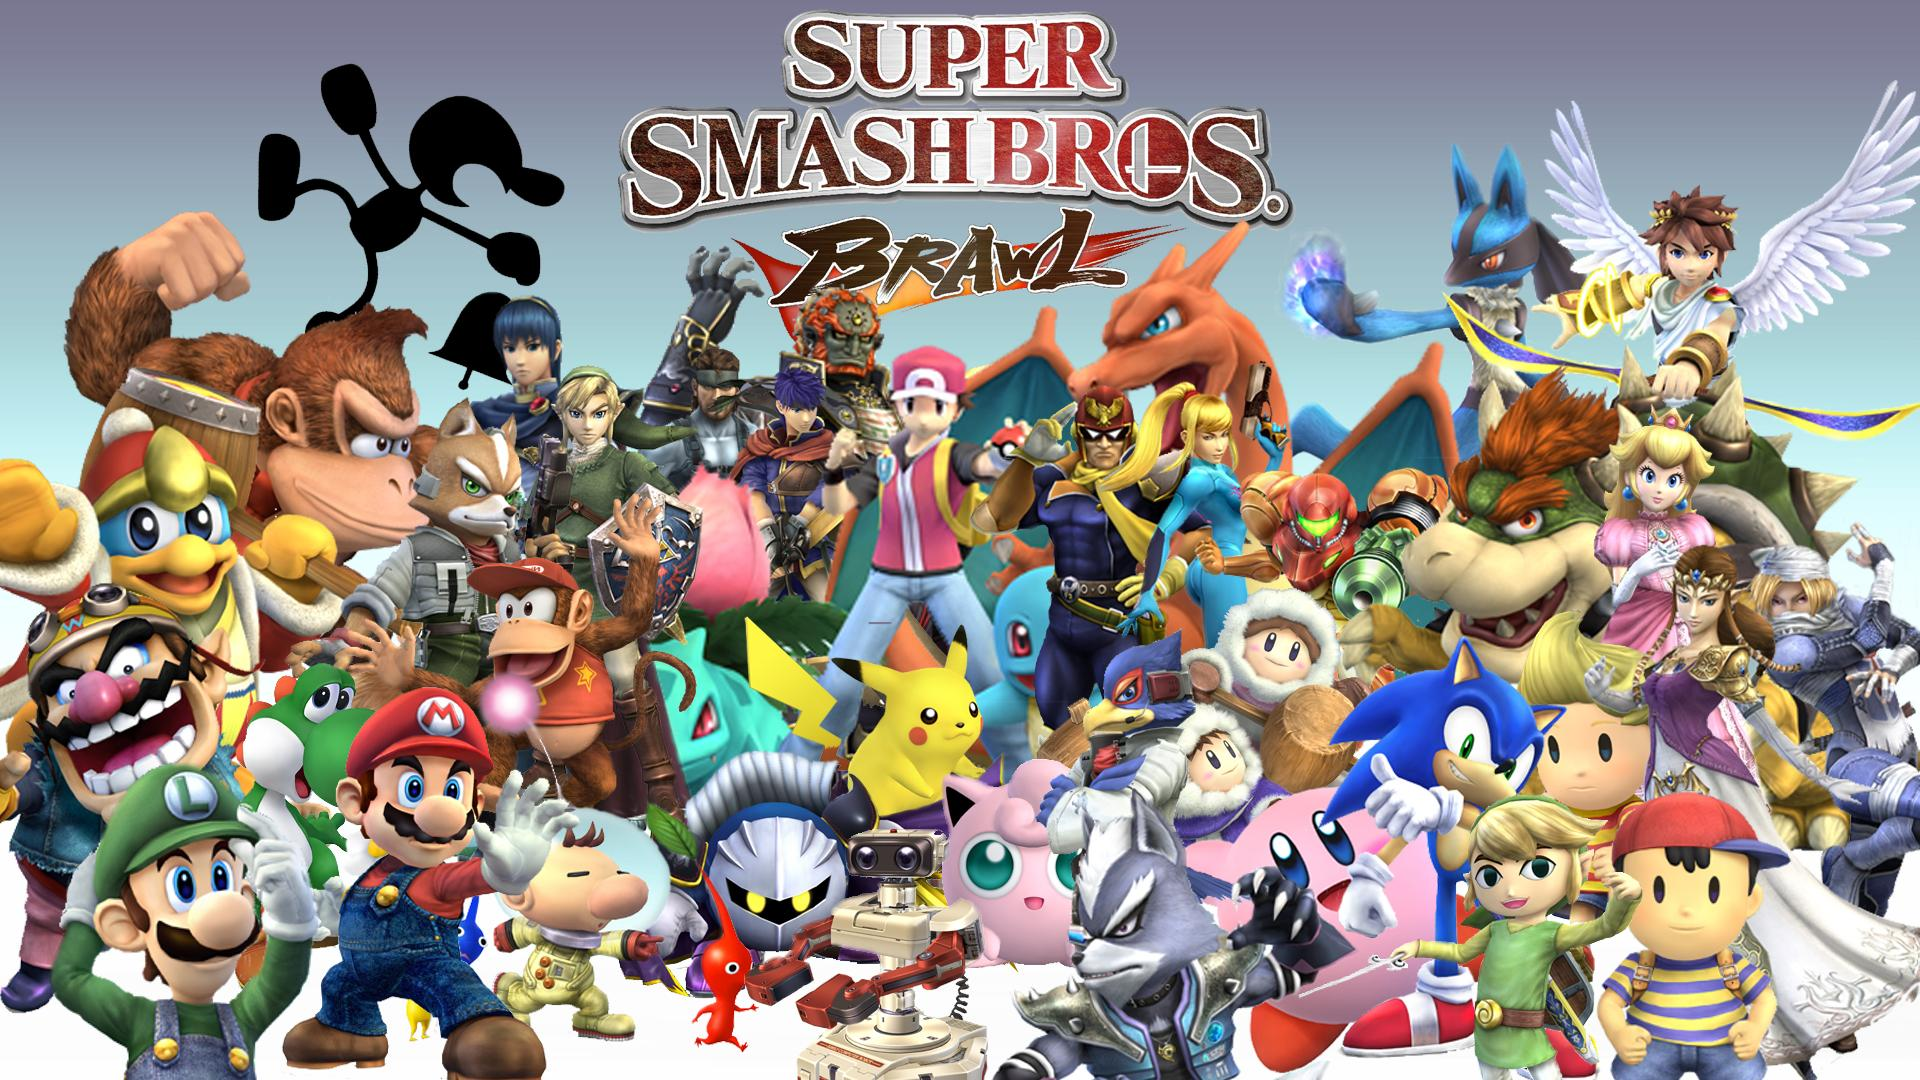 Super Smash Bros Brawl Wallpaper HD